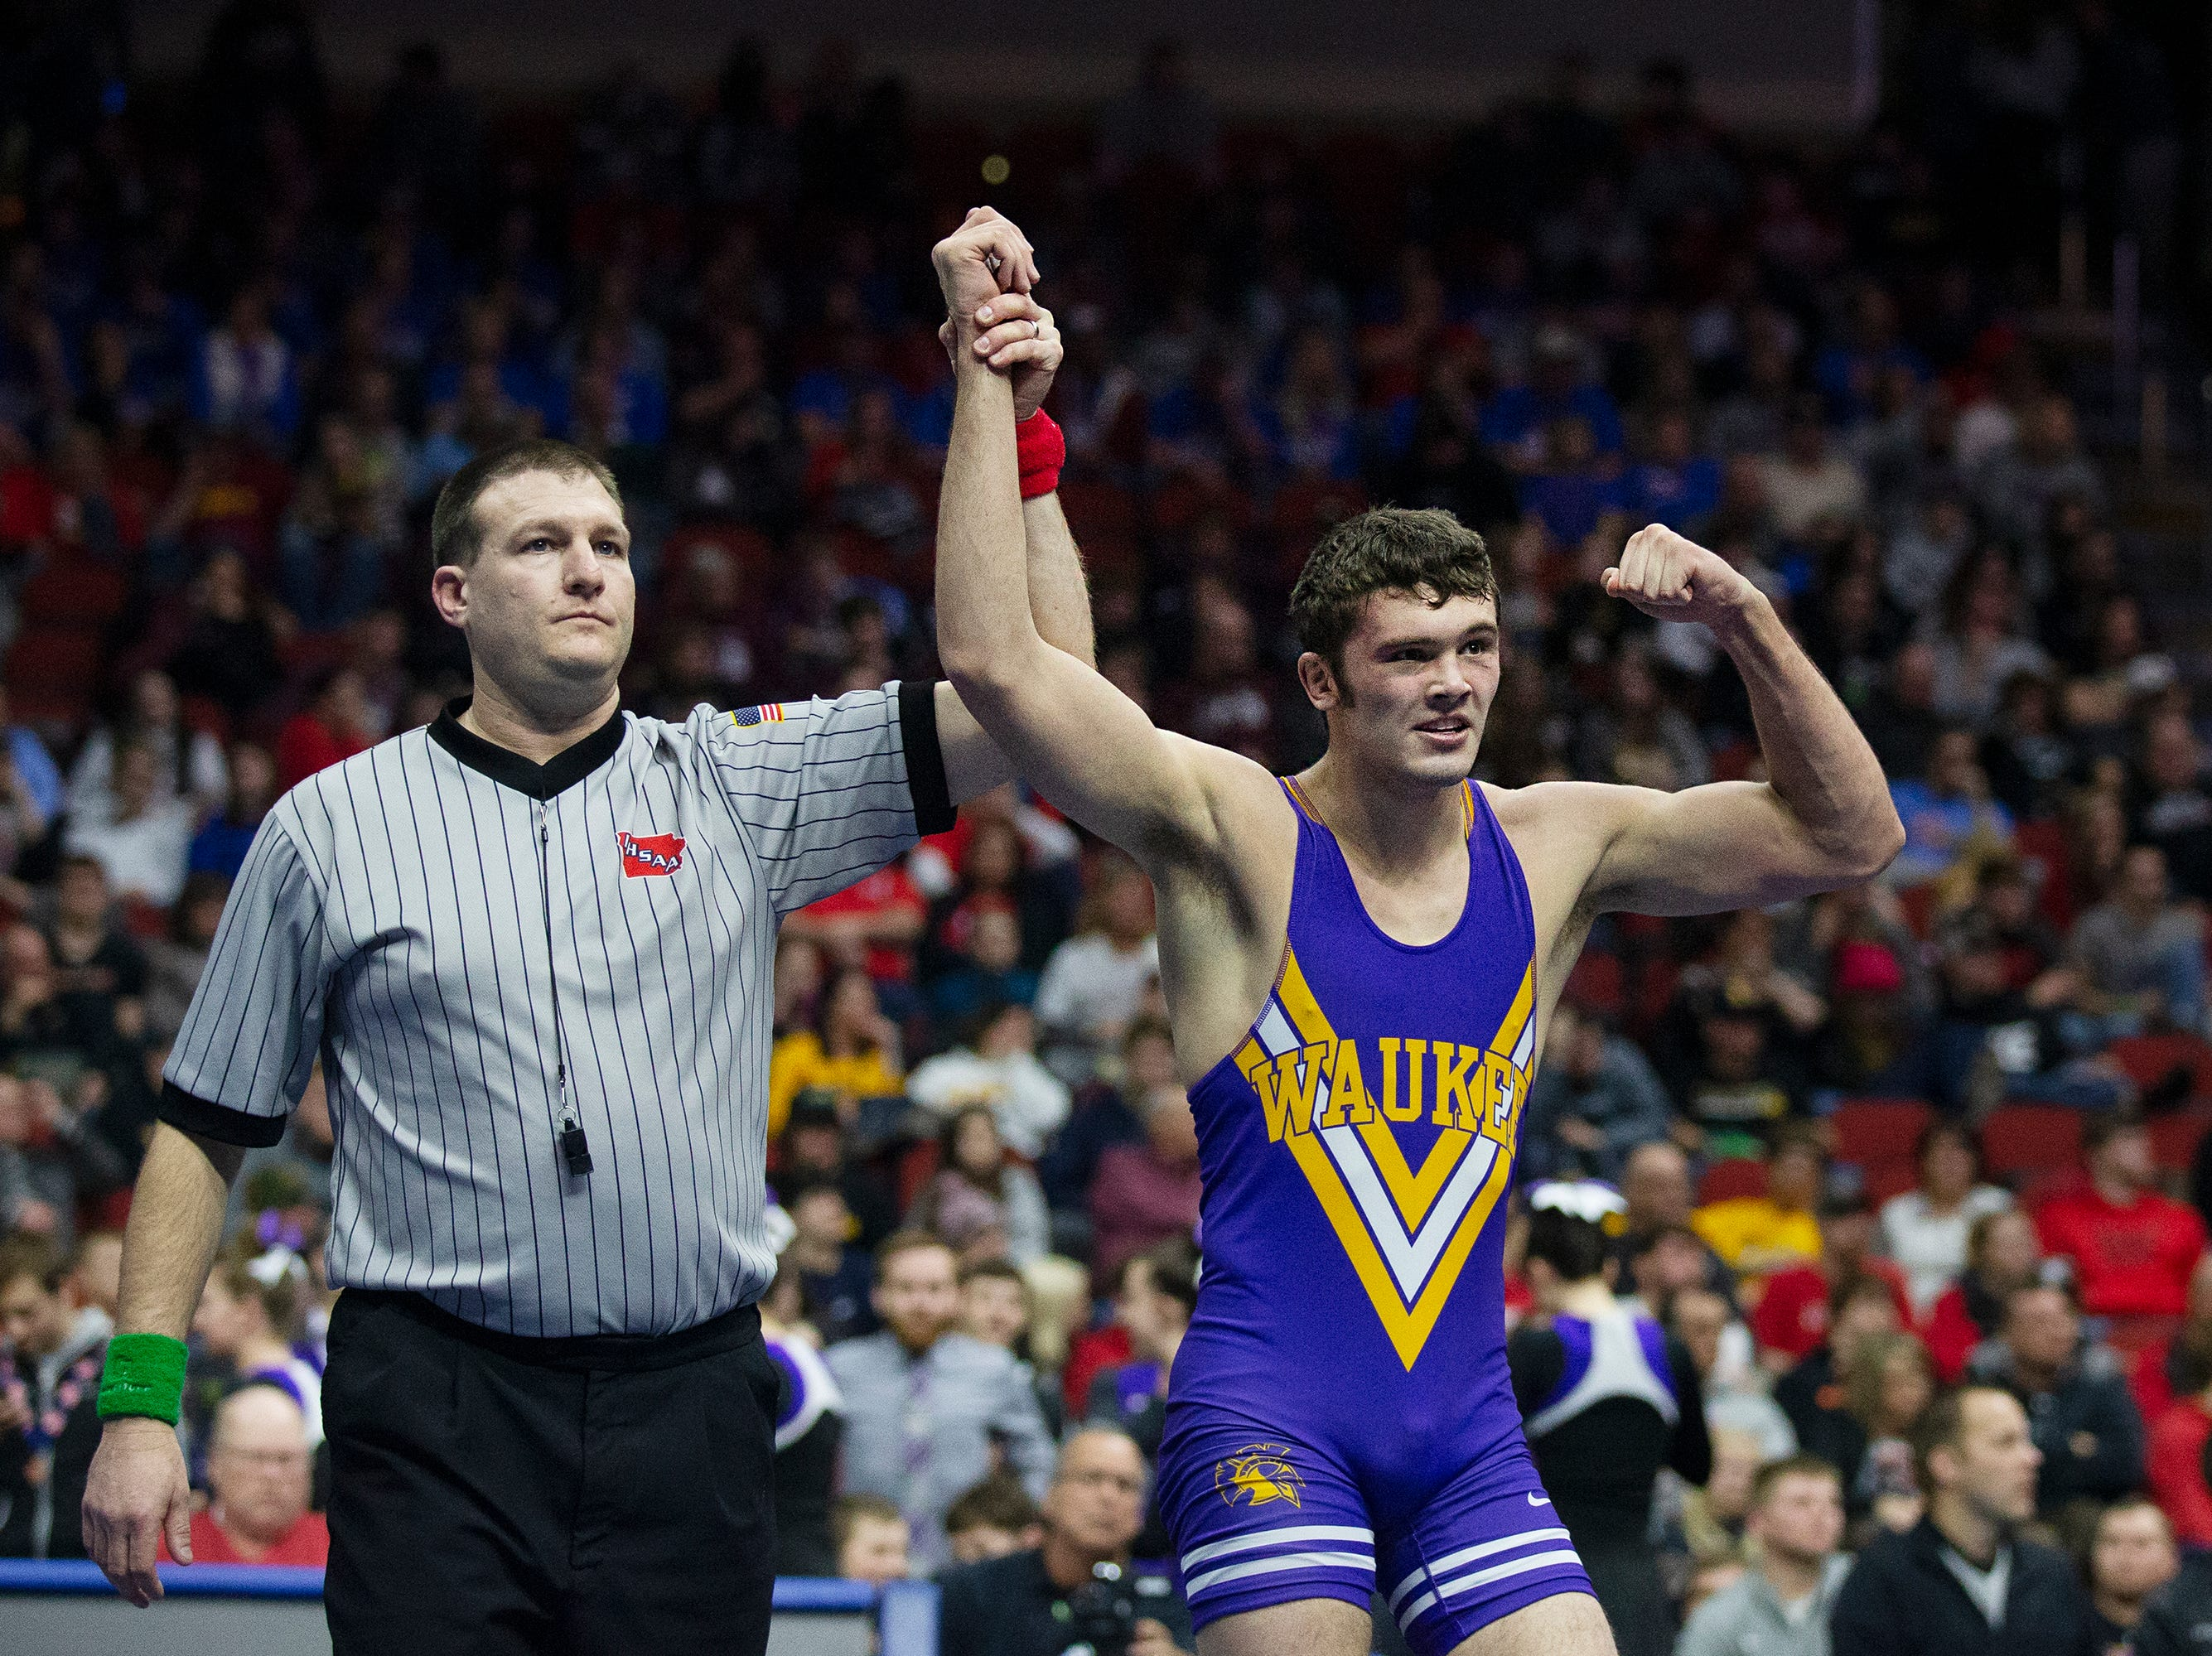 Waukee's Anthony Zach wins the 170 pound class 3A championship match against Ankeny Centennial's Logan Neils during the Iowa high school state wrestling tournament on Saturday, FEB.16, 2019, in Wells Fargo Arena.